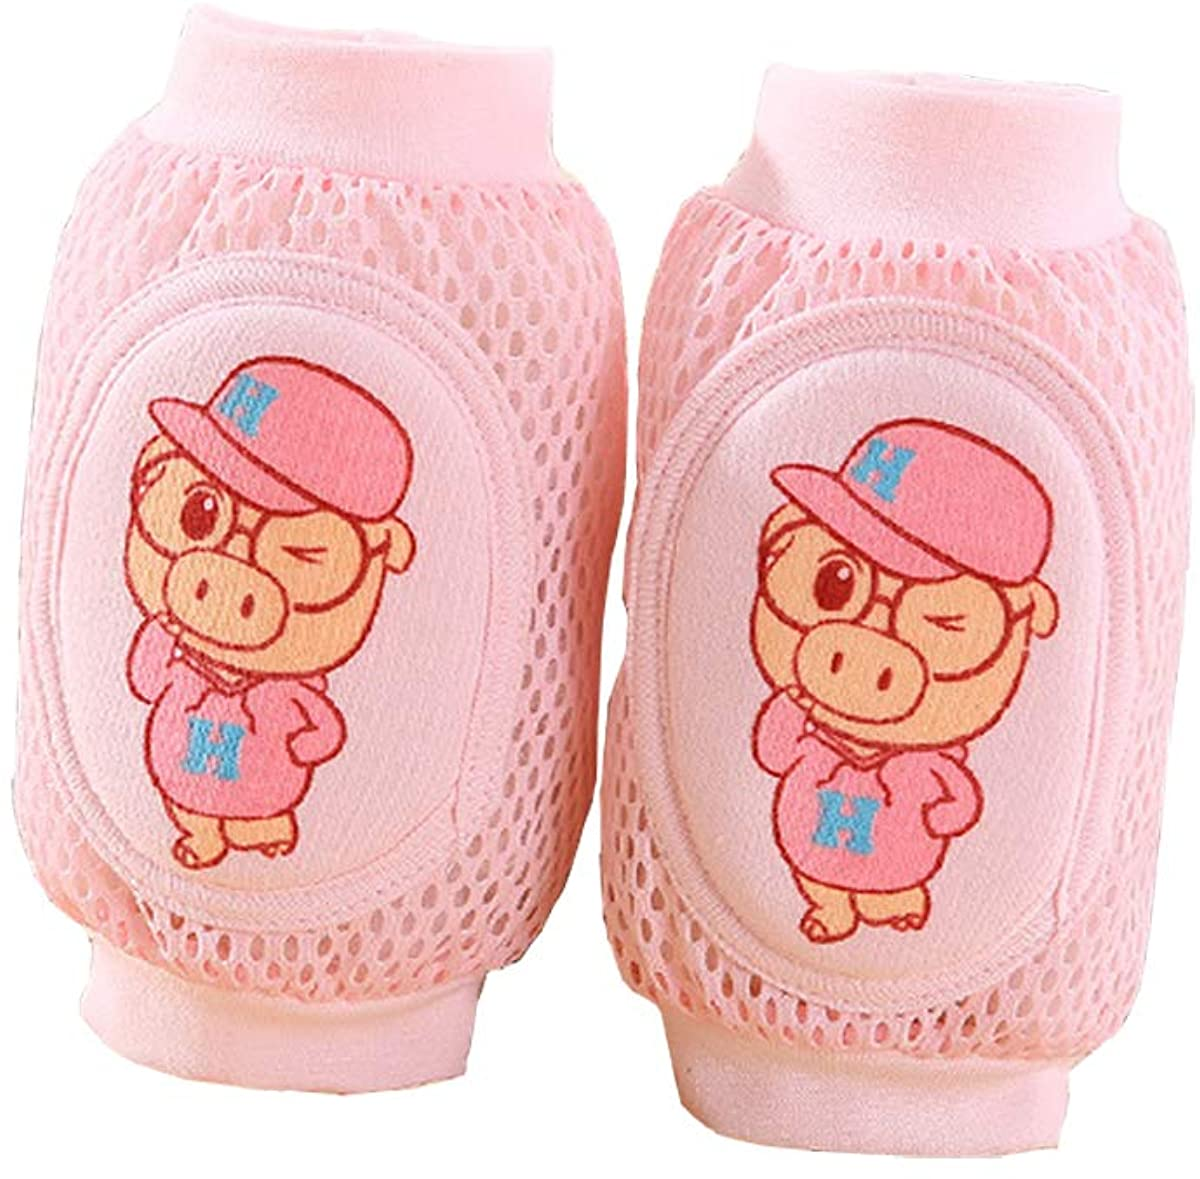 1 Pair Baby Crawling Anti-Slip Knee Pads Multiple Cartons Summer Adjustable Breathable Protector